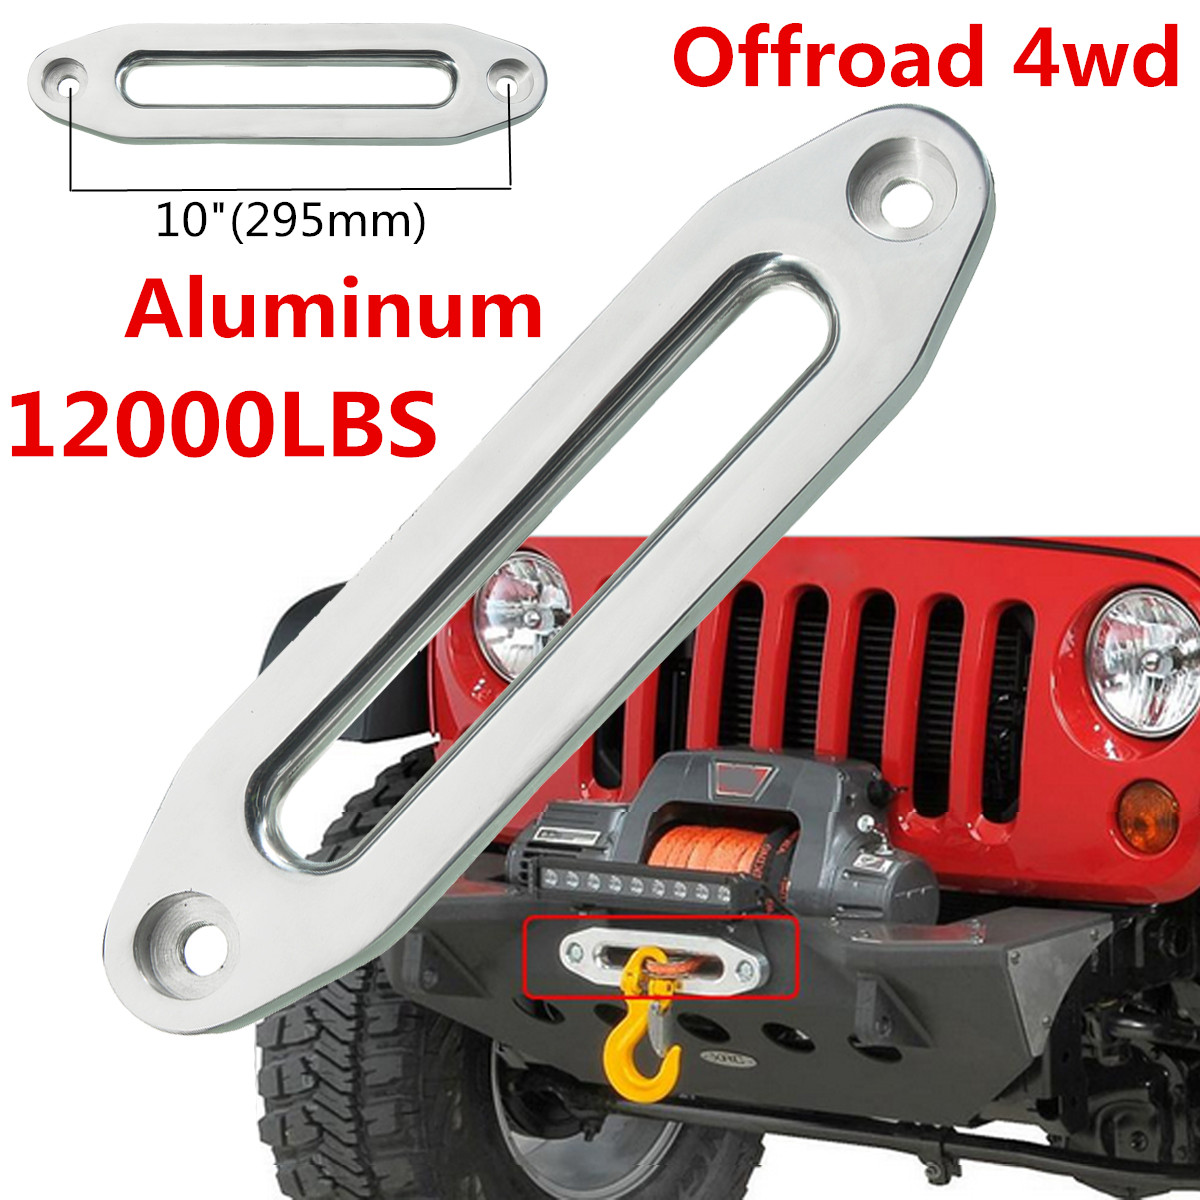 NEW 12000 Lbs Winch Rope Guide Silver Hawse Aluminum Fairlead For Off Road 4WD